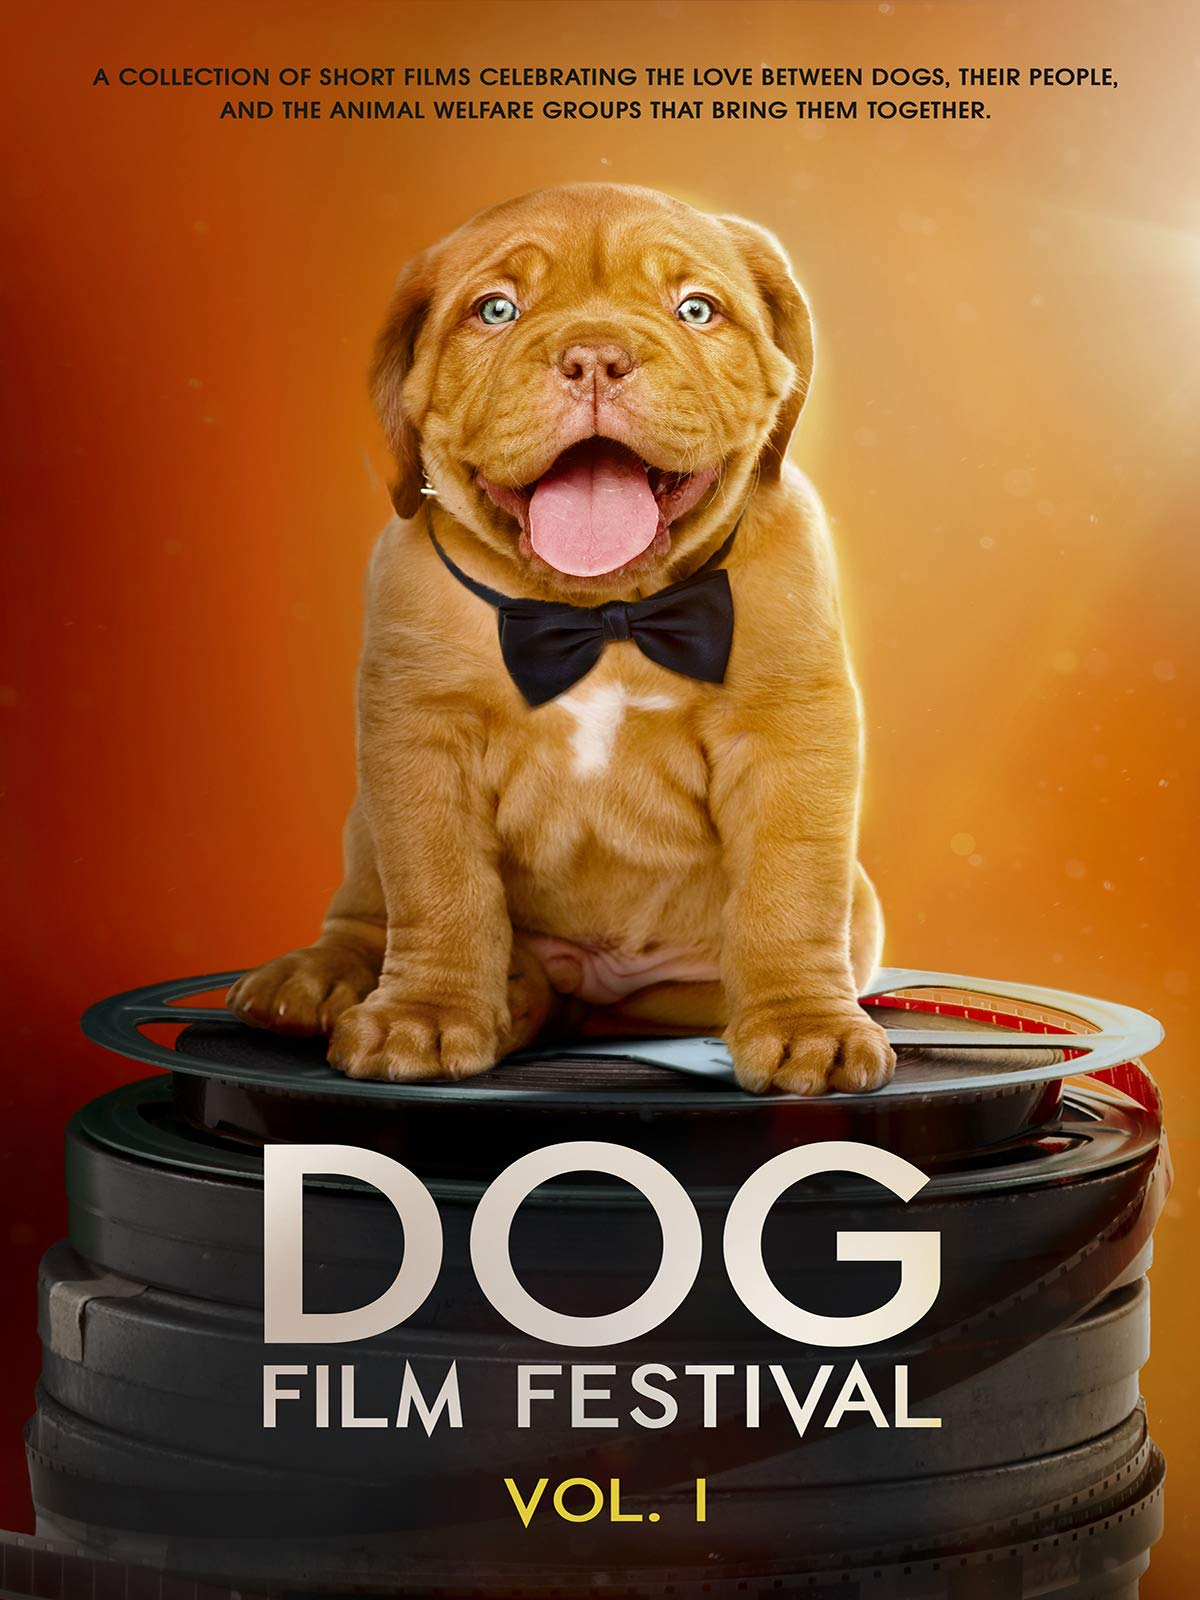 Dog Film Festival Vol. 1